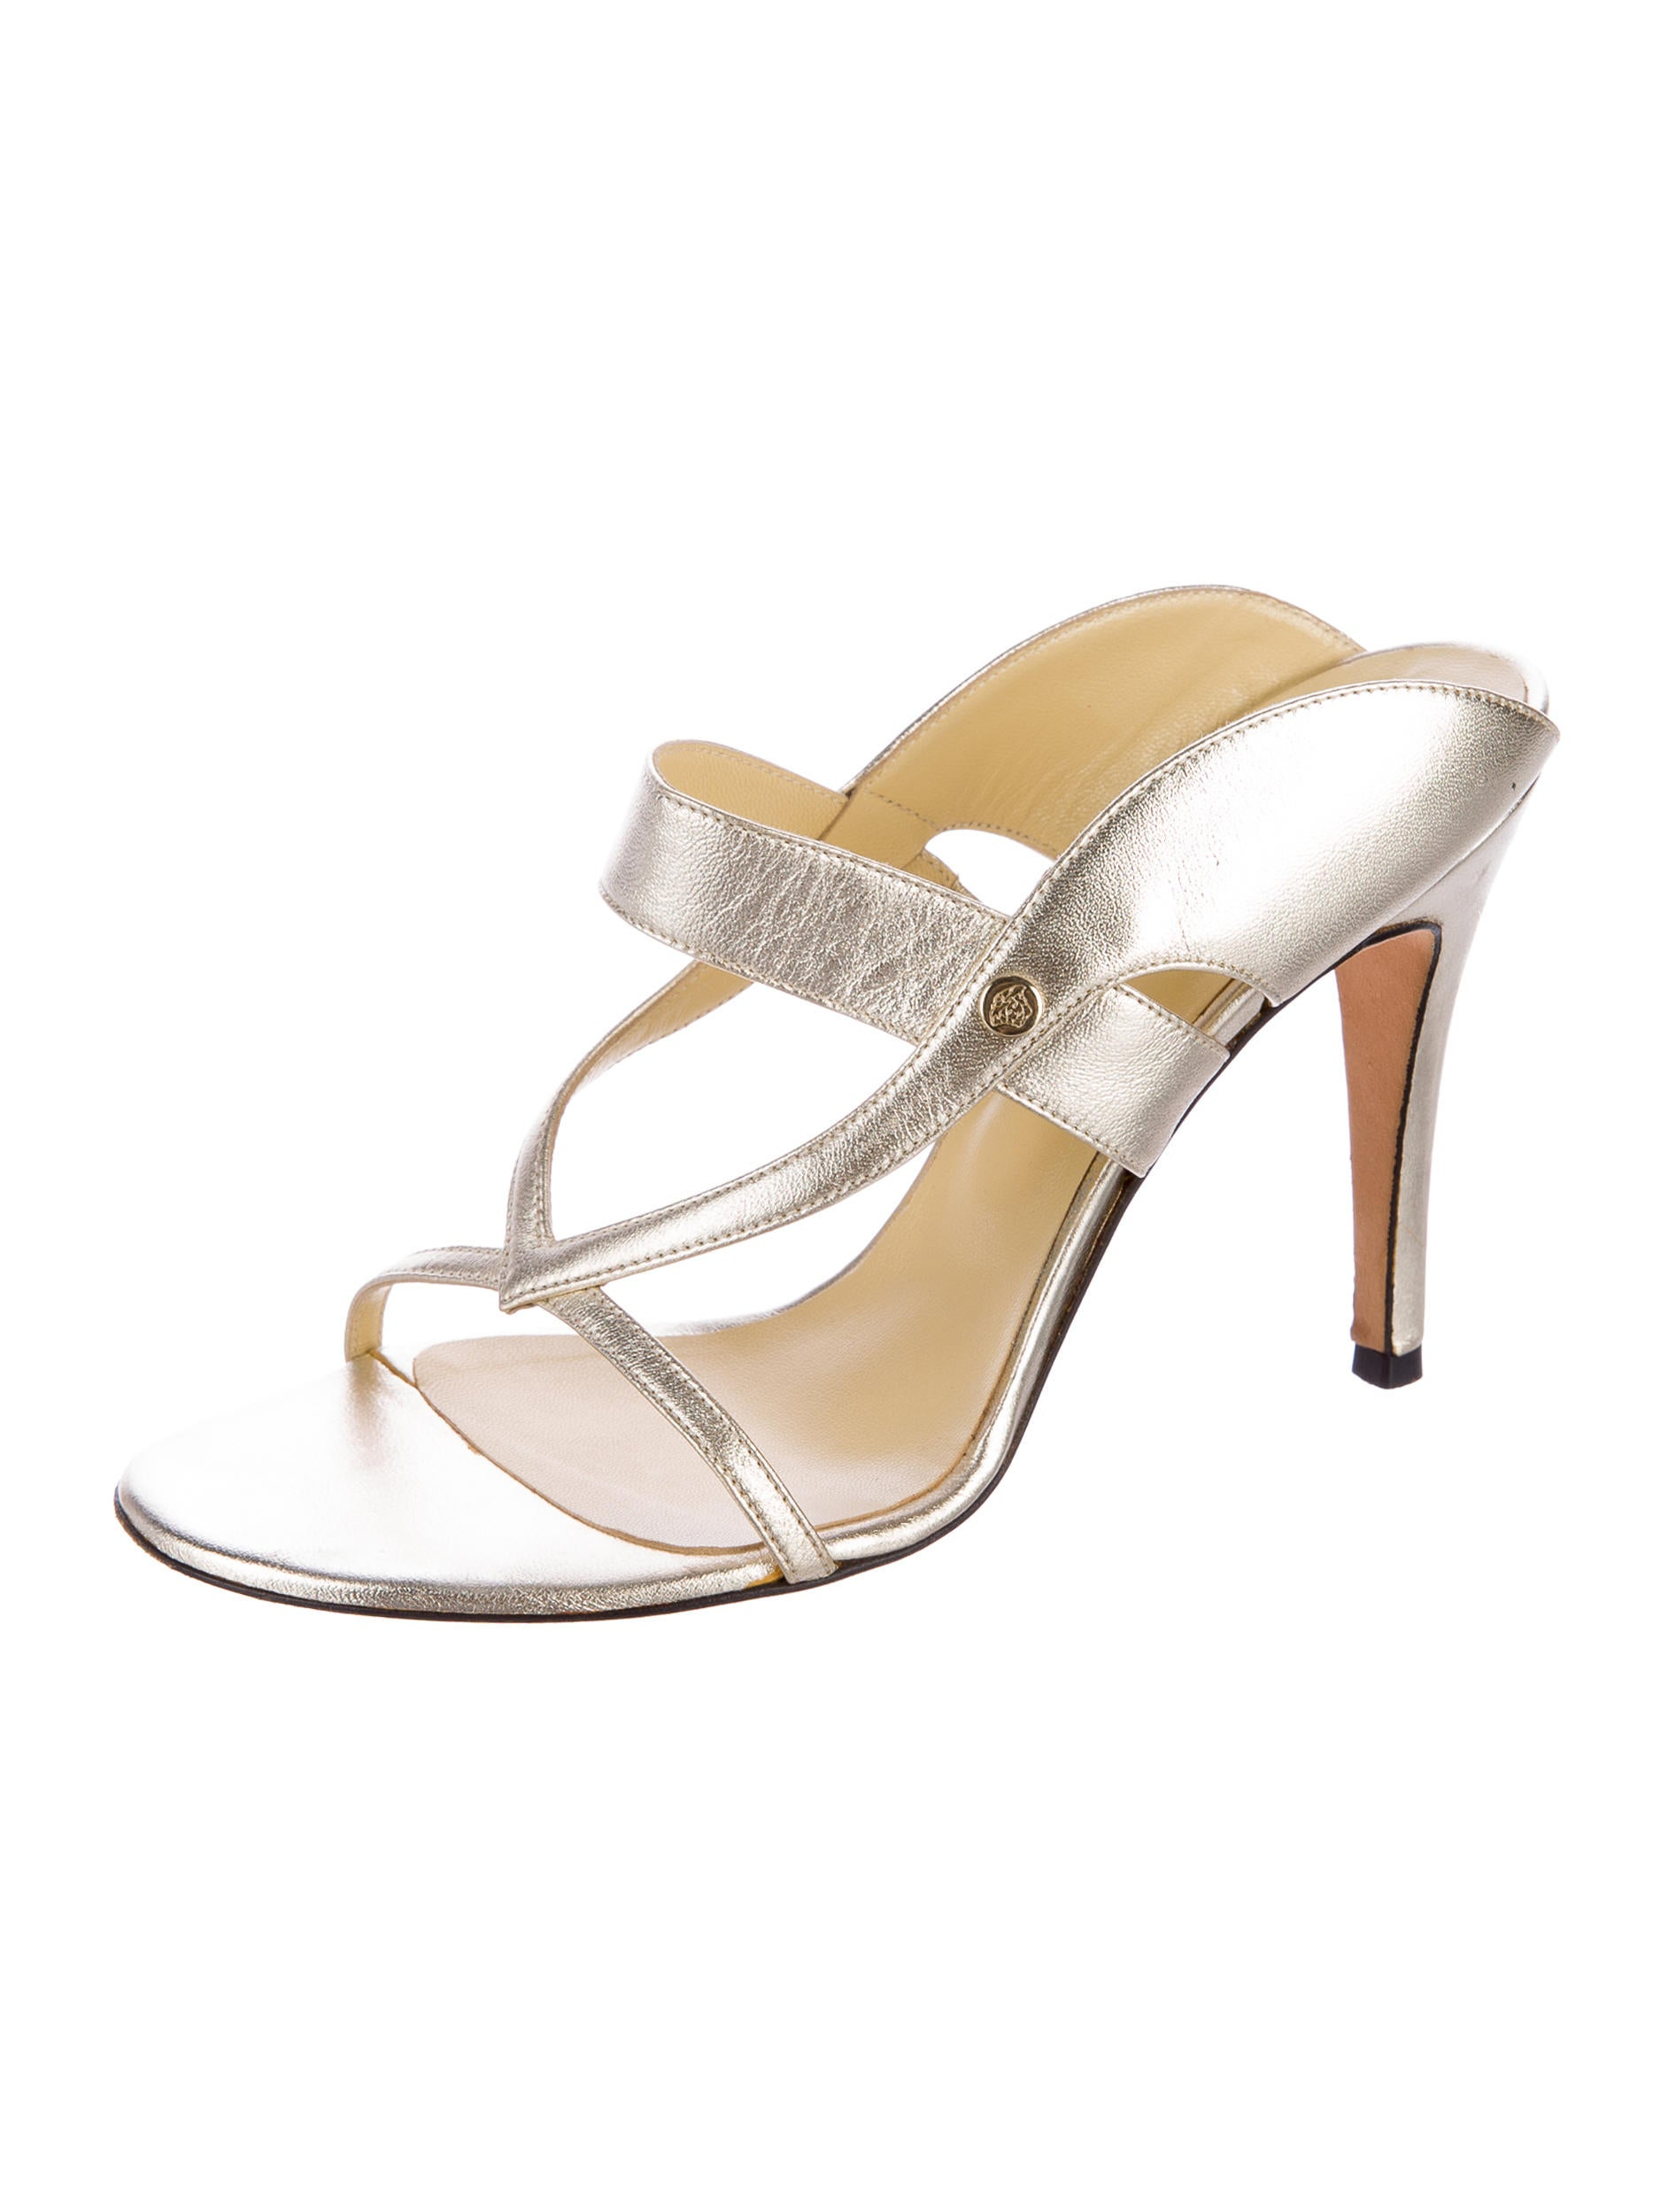 Versace Metallic Leather Slide Sandals - Shoes - VES30794 | The RealReal